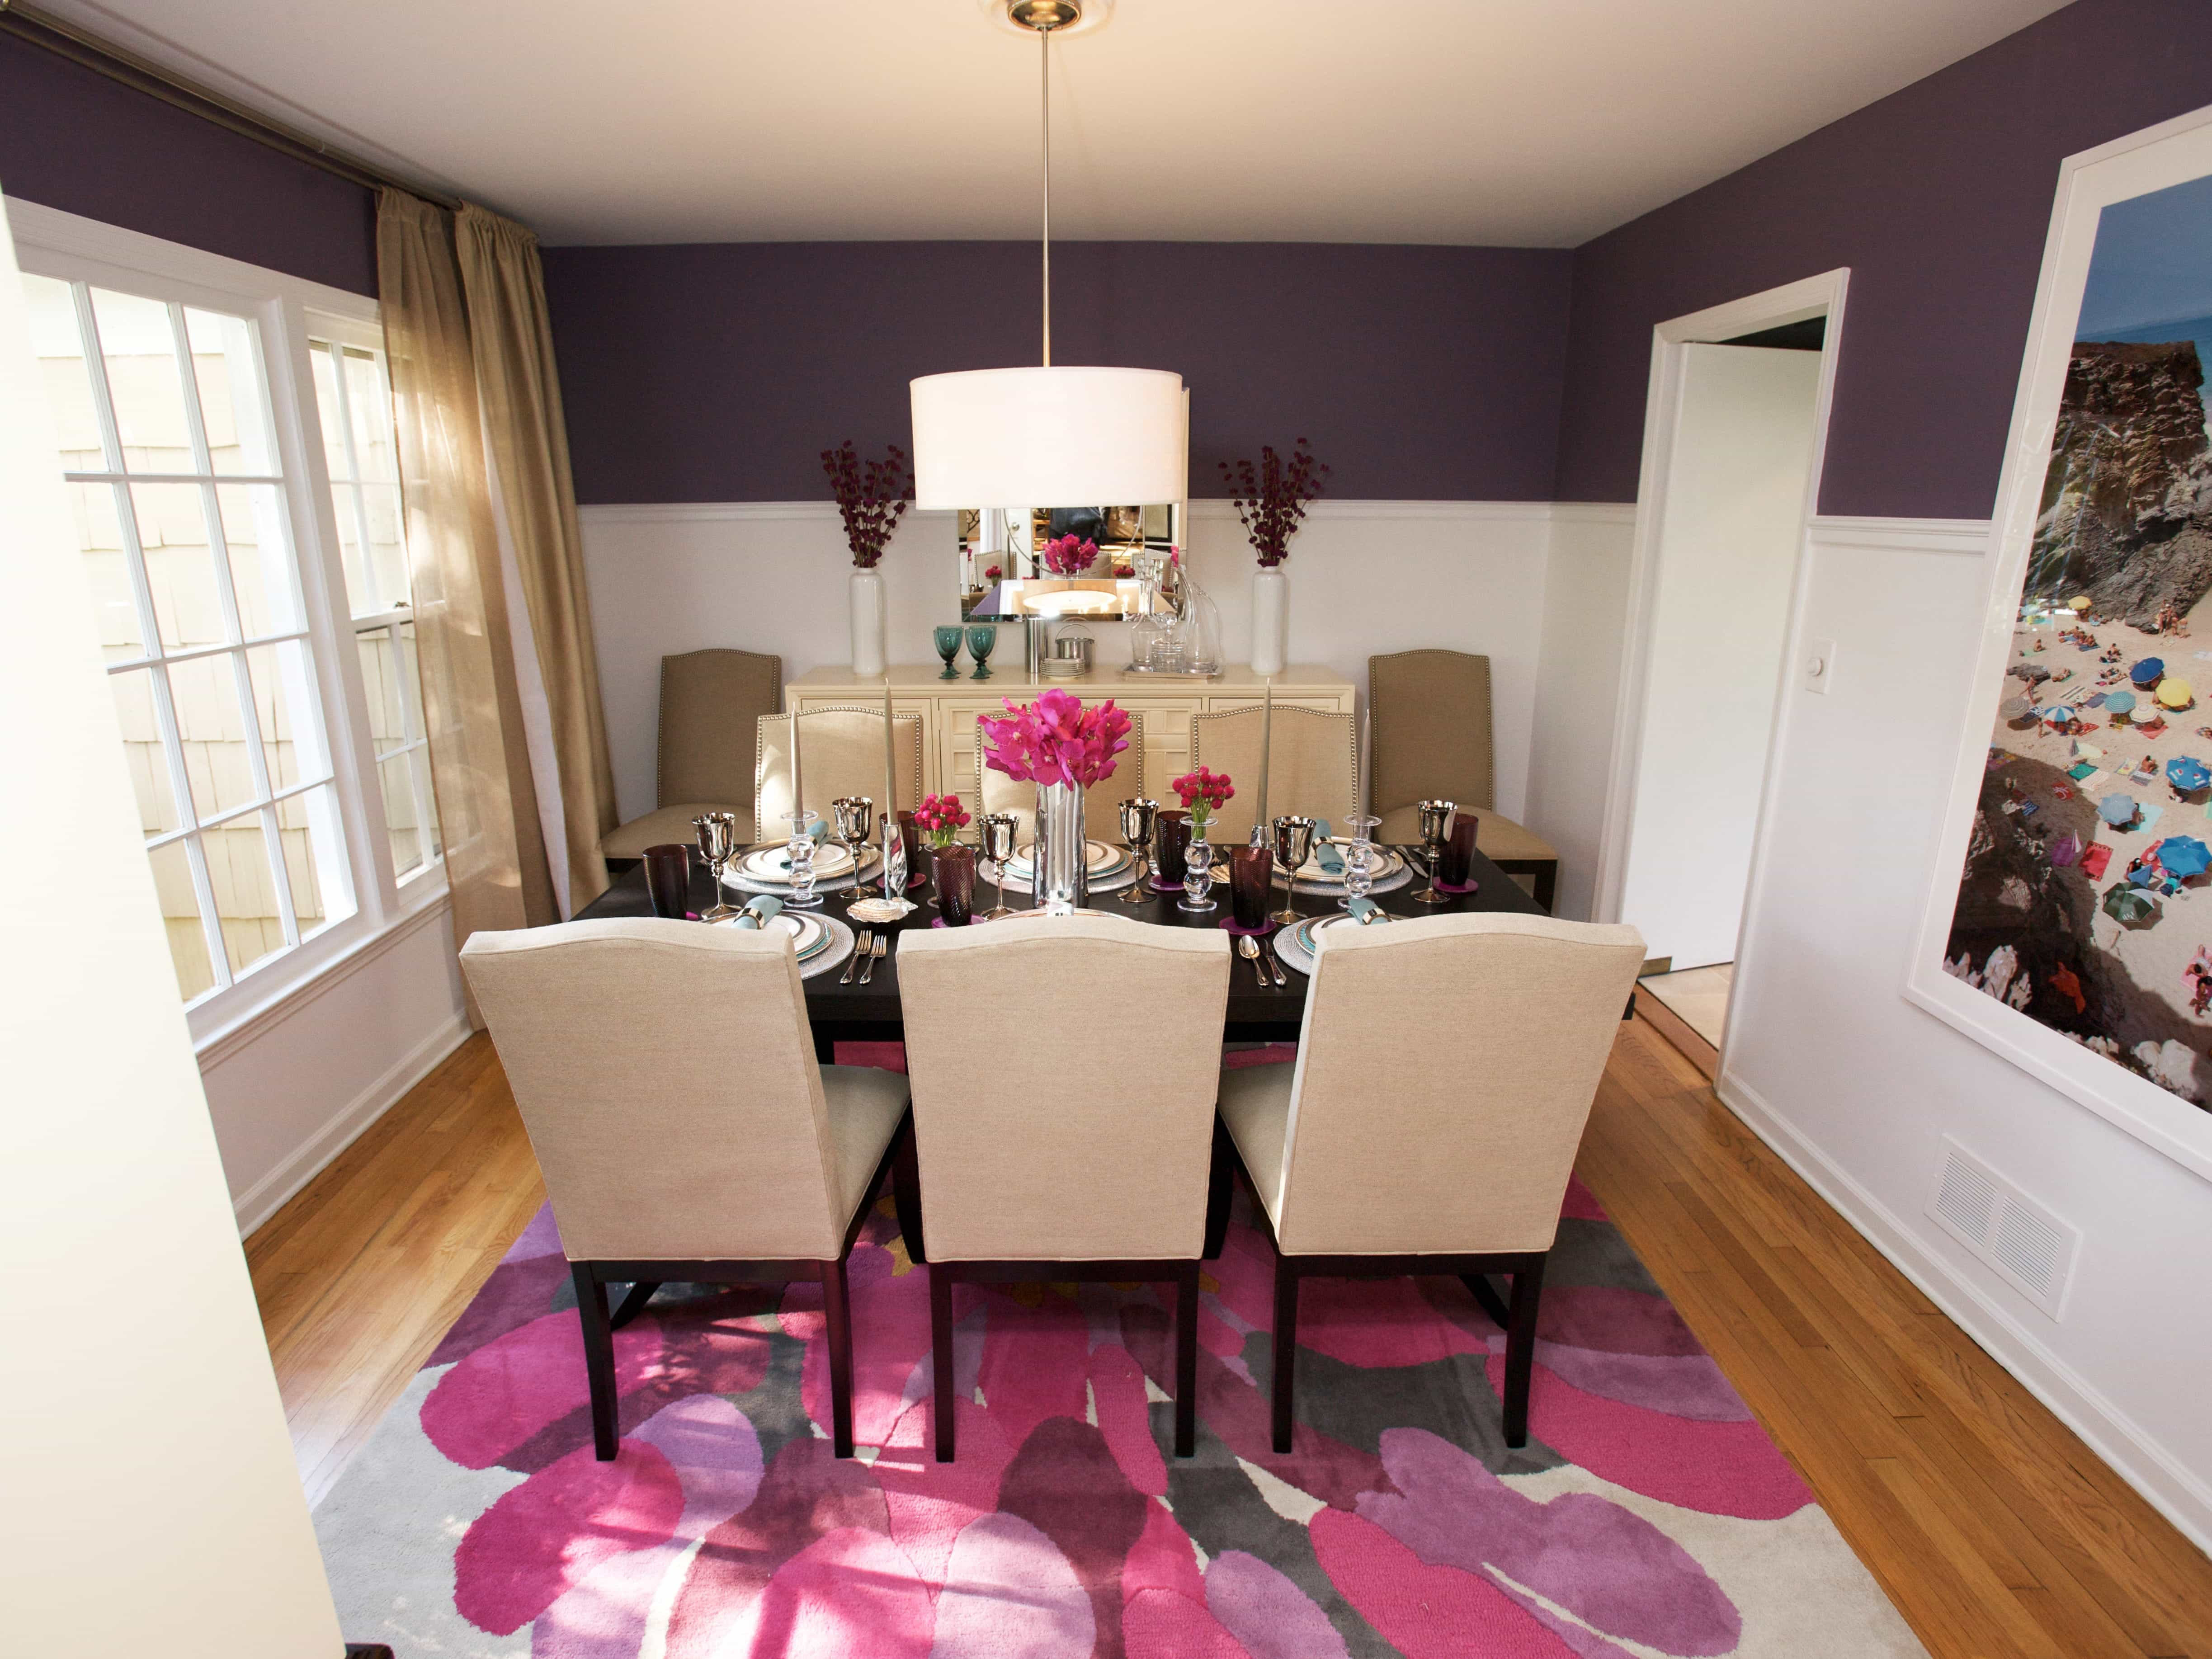 Romantic Decoration For Small Purple Dining Room Interior (View 17 of 21)